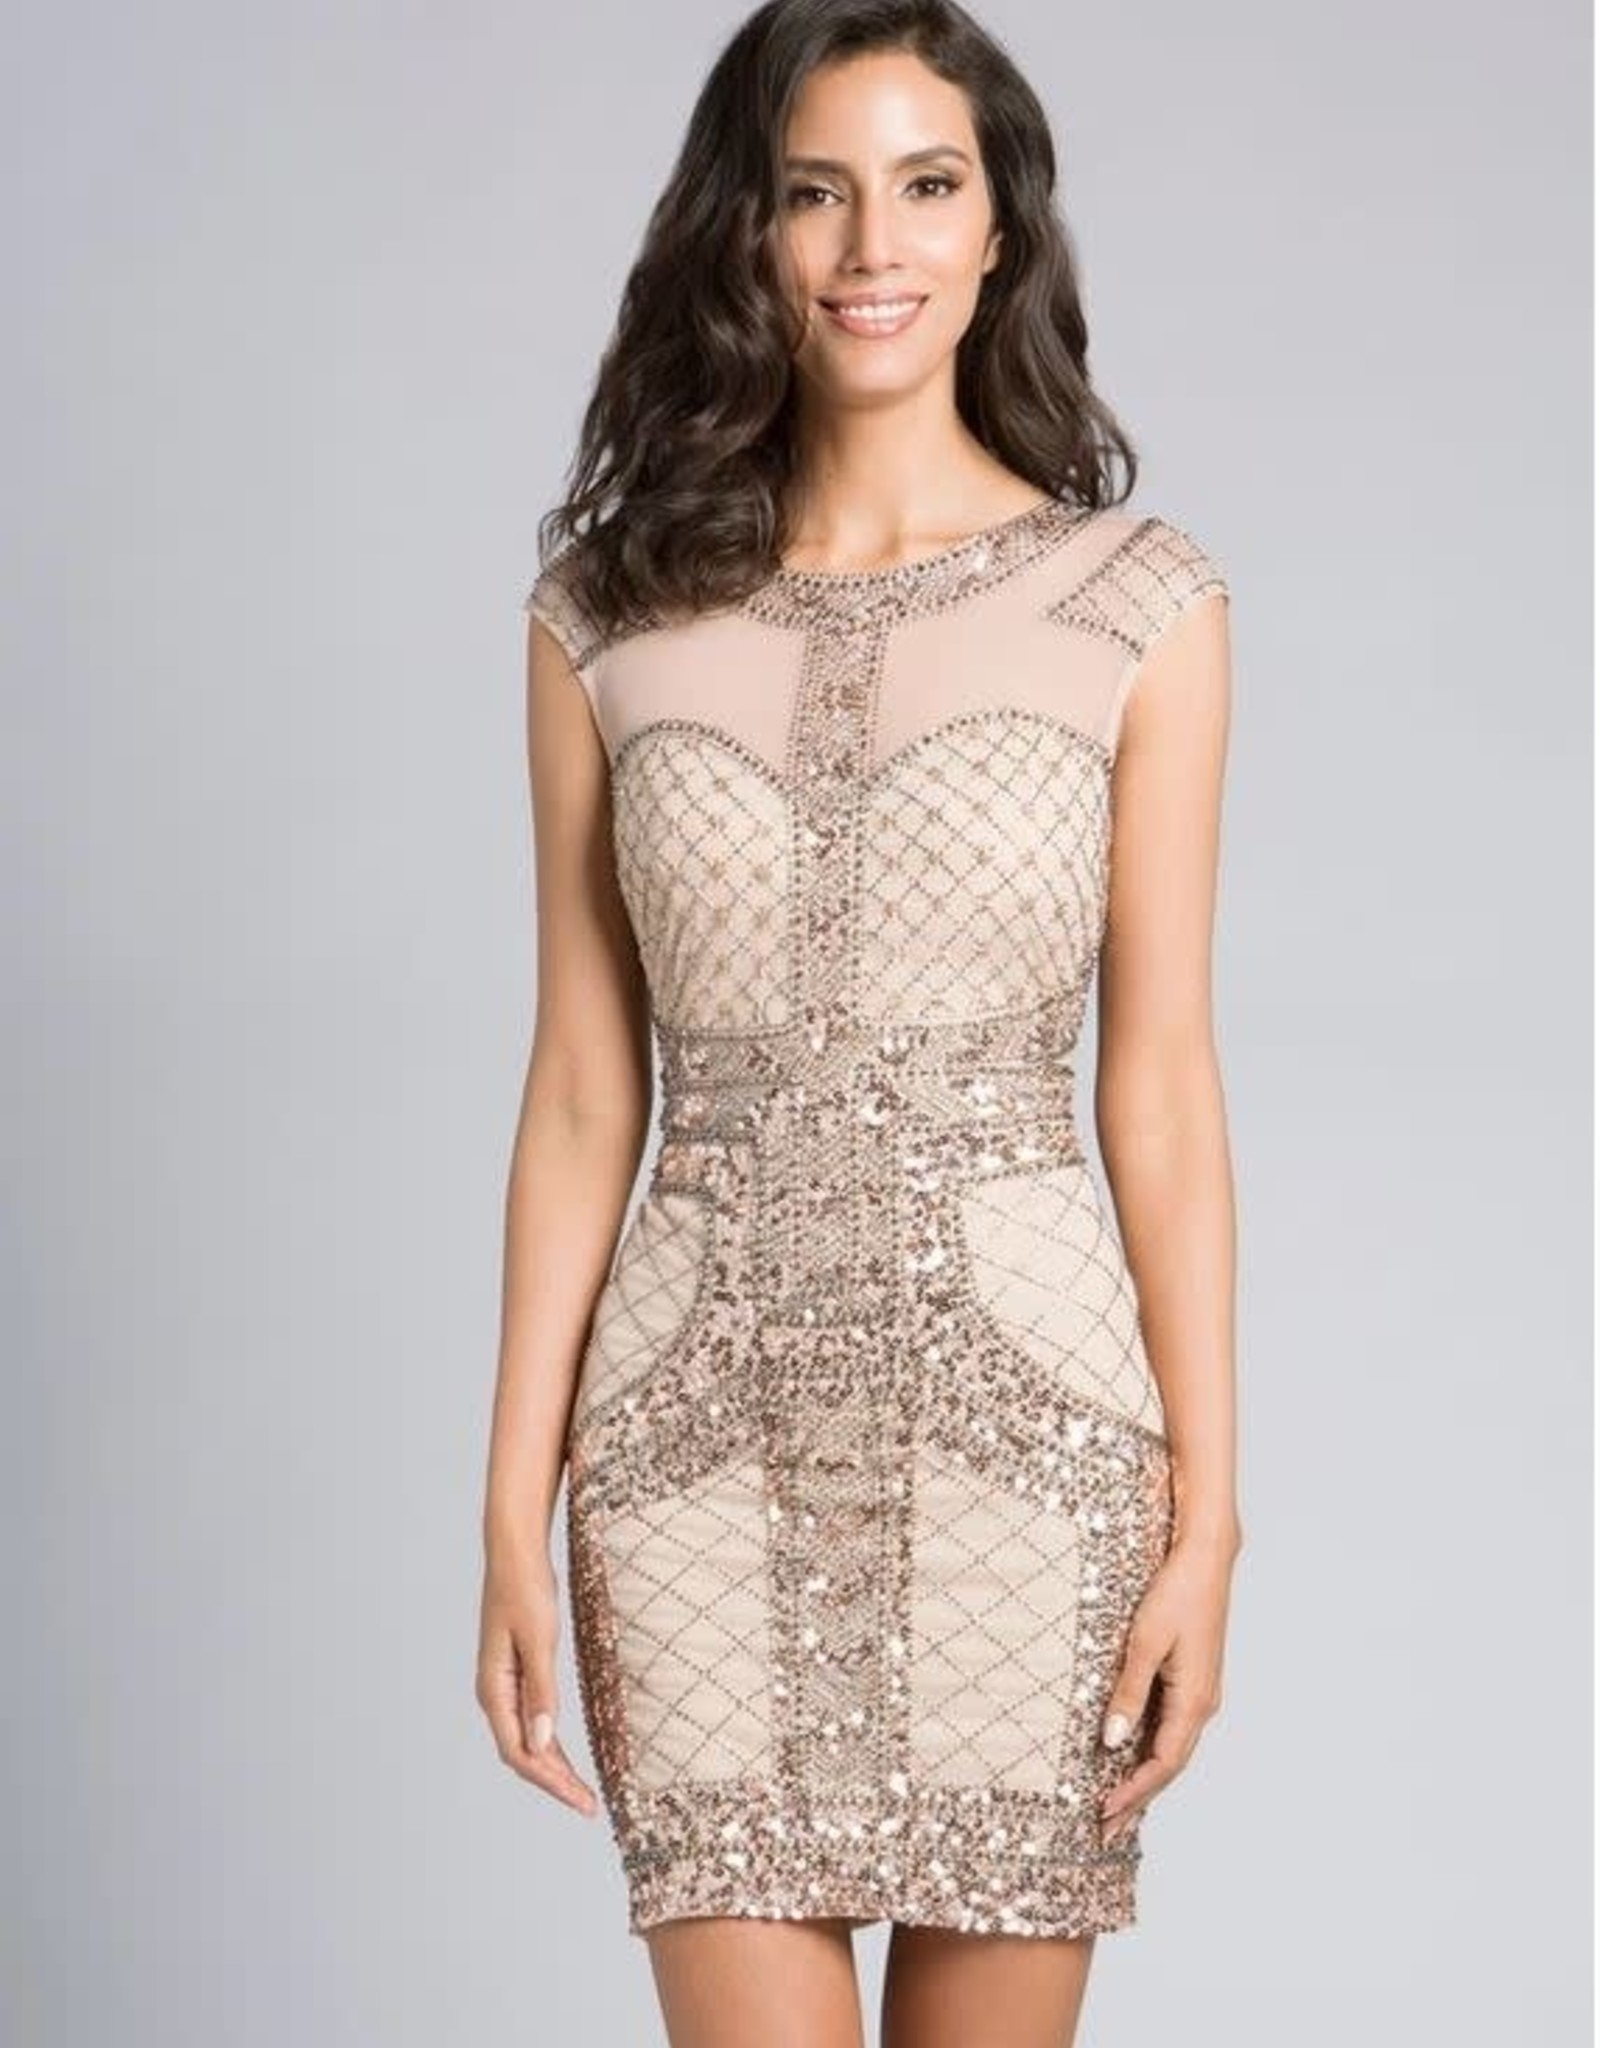 Lara Design Champagne Glam Cocktail Dress